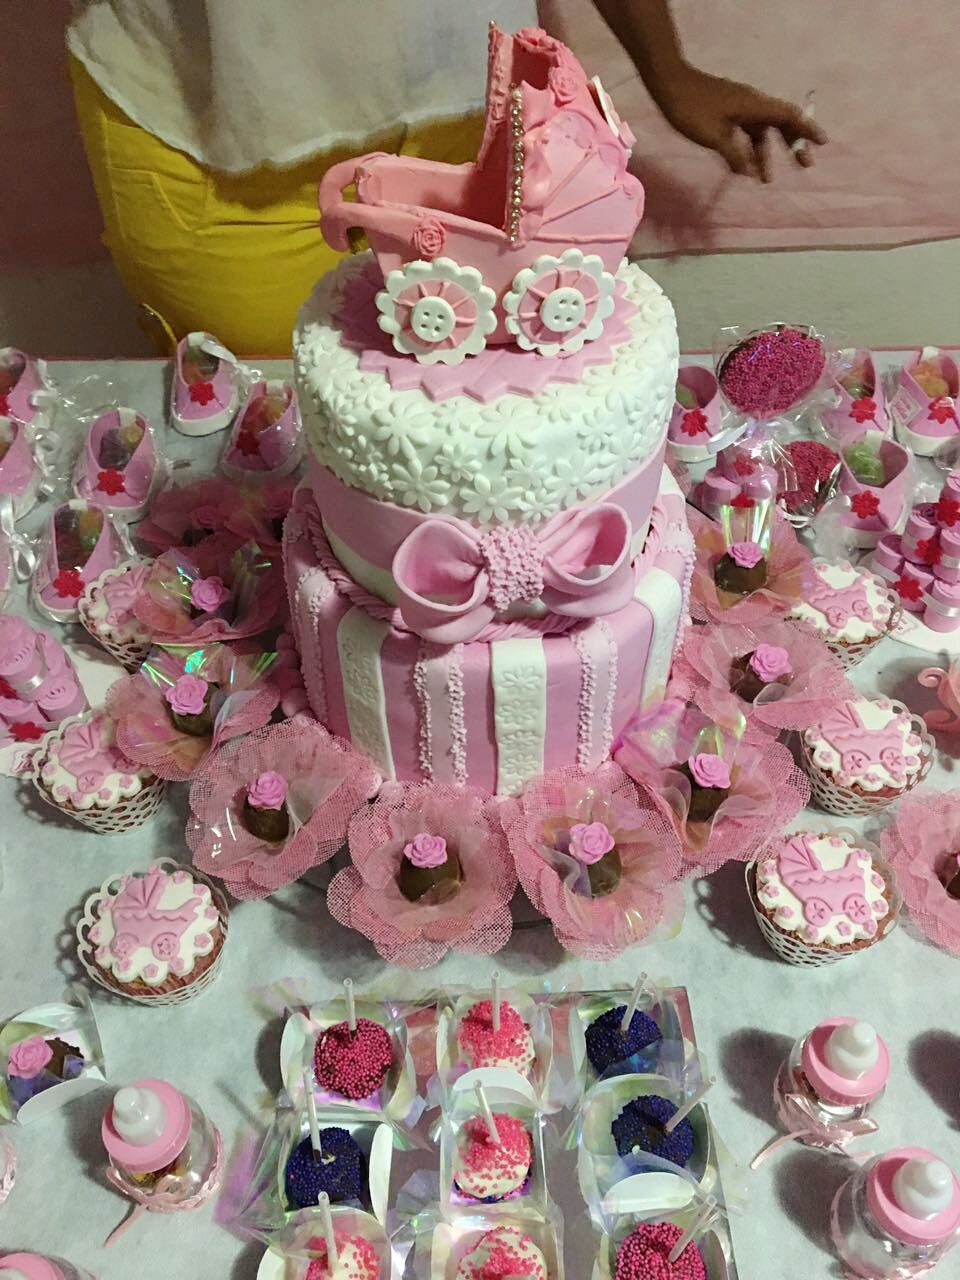 pink color, sweet food, celebration, indoors, indulgence, flower, variation, dessert, temptation, freshness, unhealthy eating, one person, wedding cake, close-up, life events, real people, day, food, people